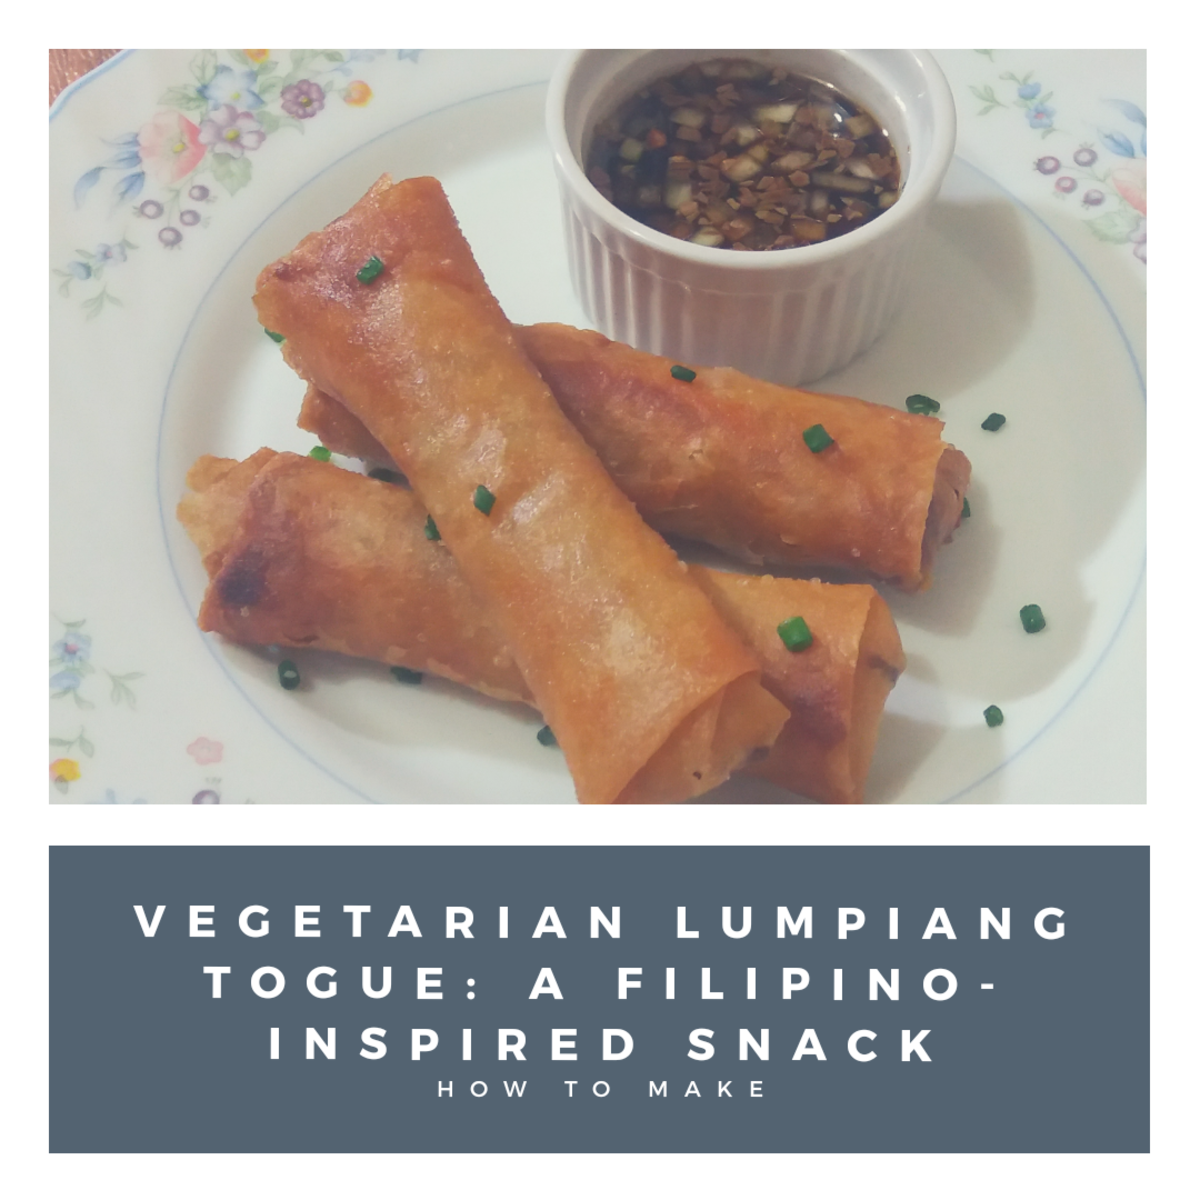 How to Make Vegetarian Lumpiang Togue: A Filipino-Inspired Snack